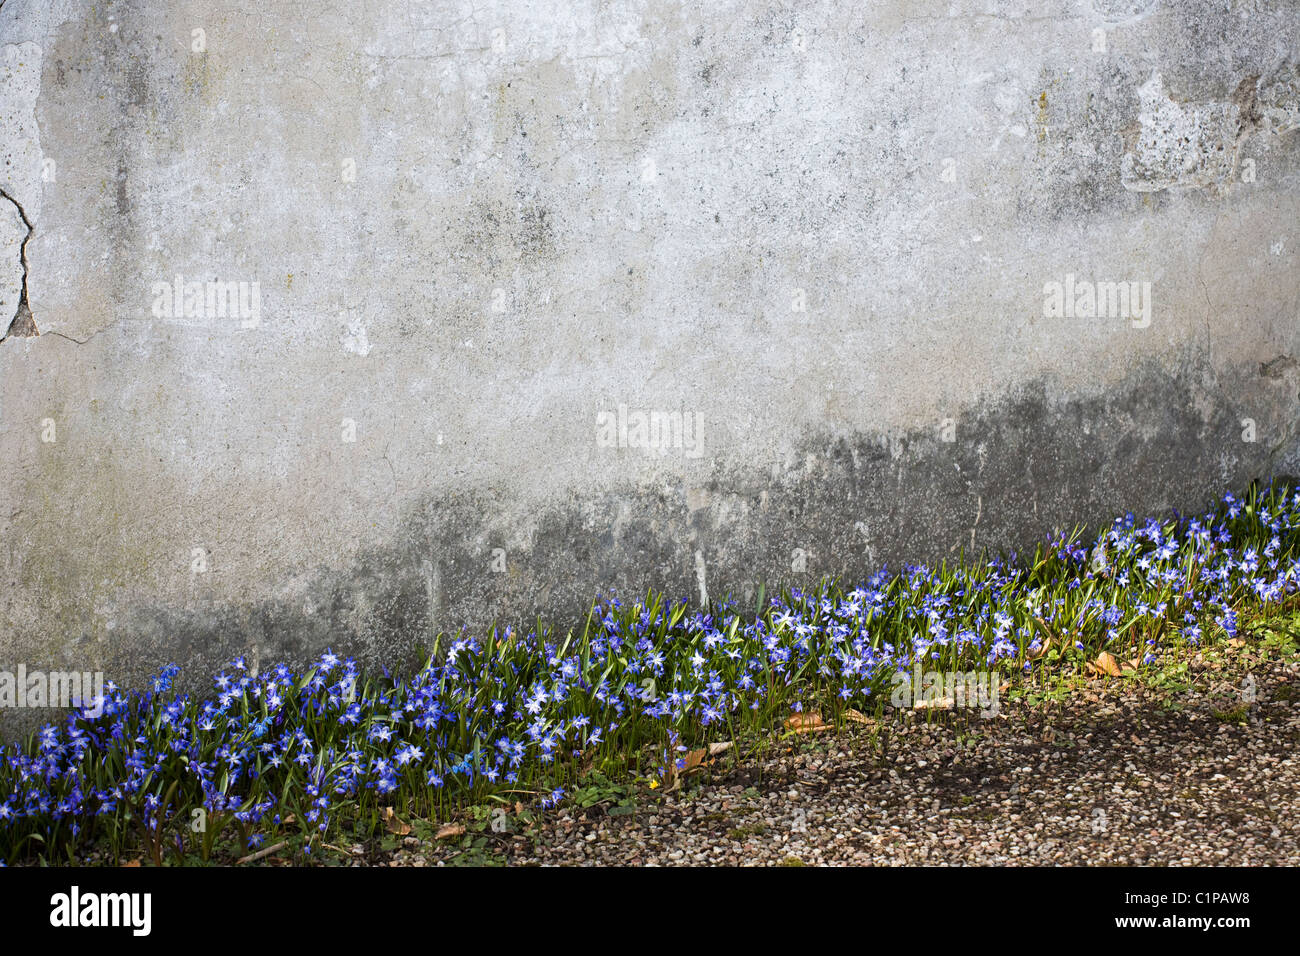 glory-of-the-snow flowering near wall - Stock Image